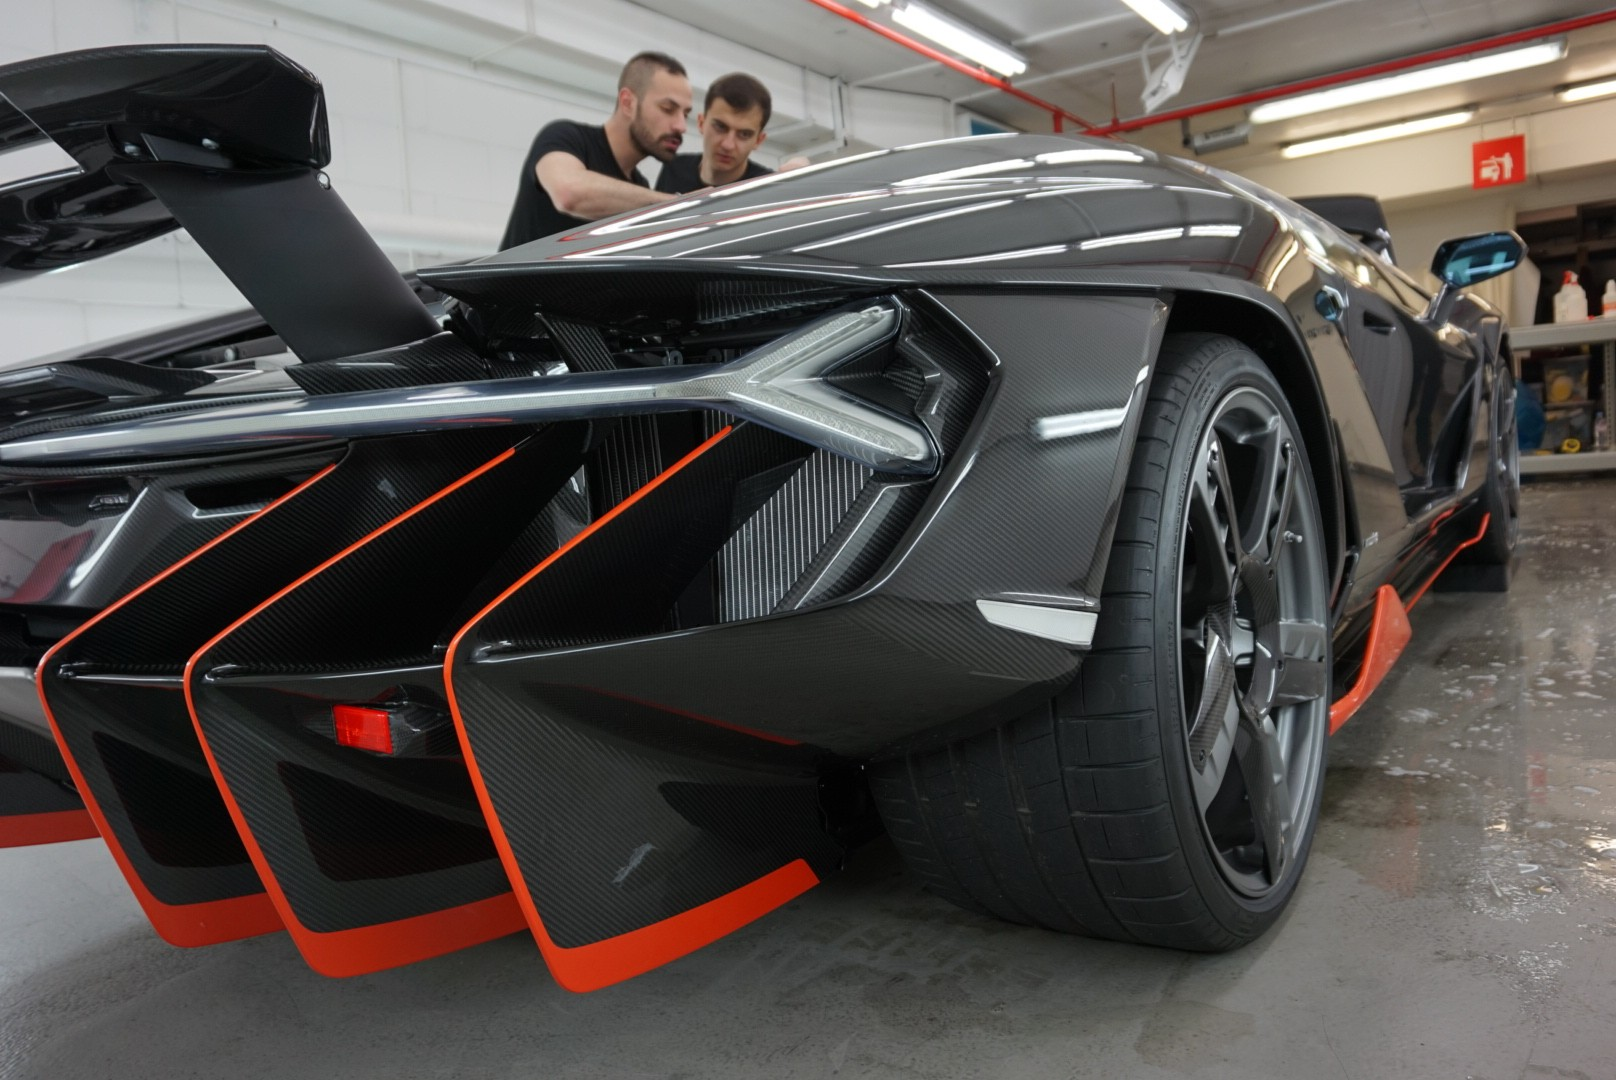 First Lamborghini Centenario Attracts A Huge Crowd In London